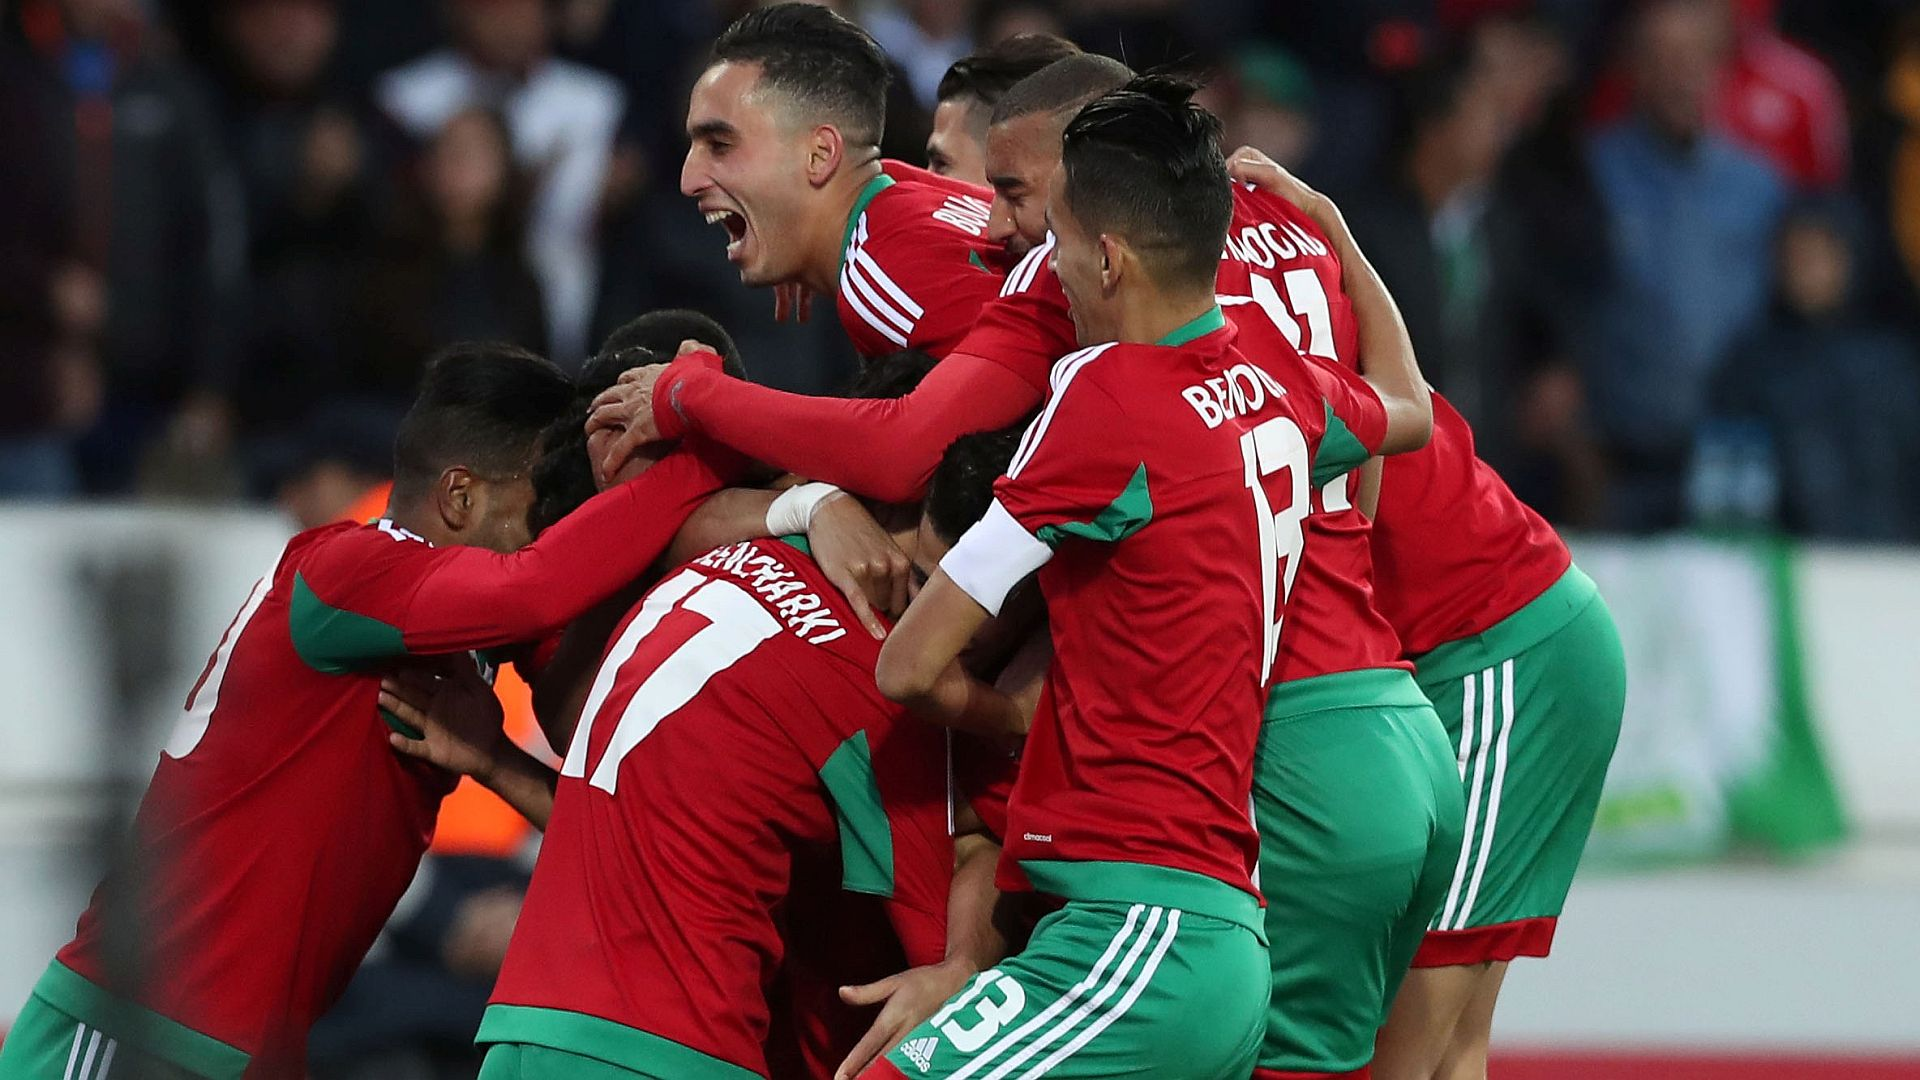 Morocco beat Namibia to reach semi-finals at African Nations Championship